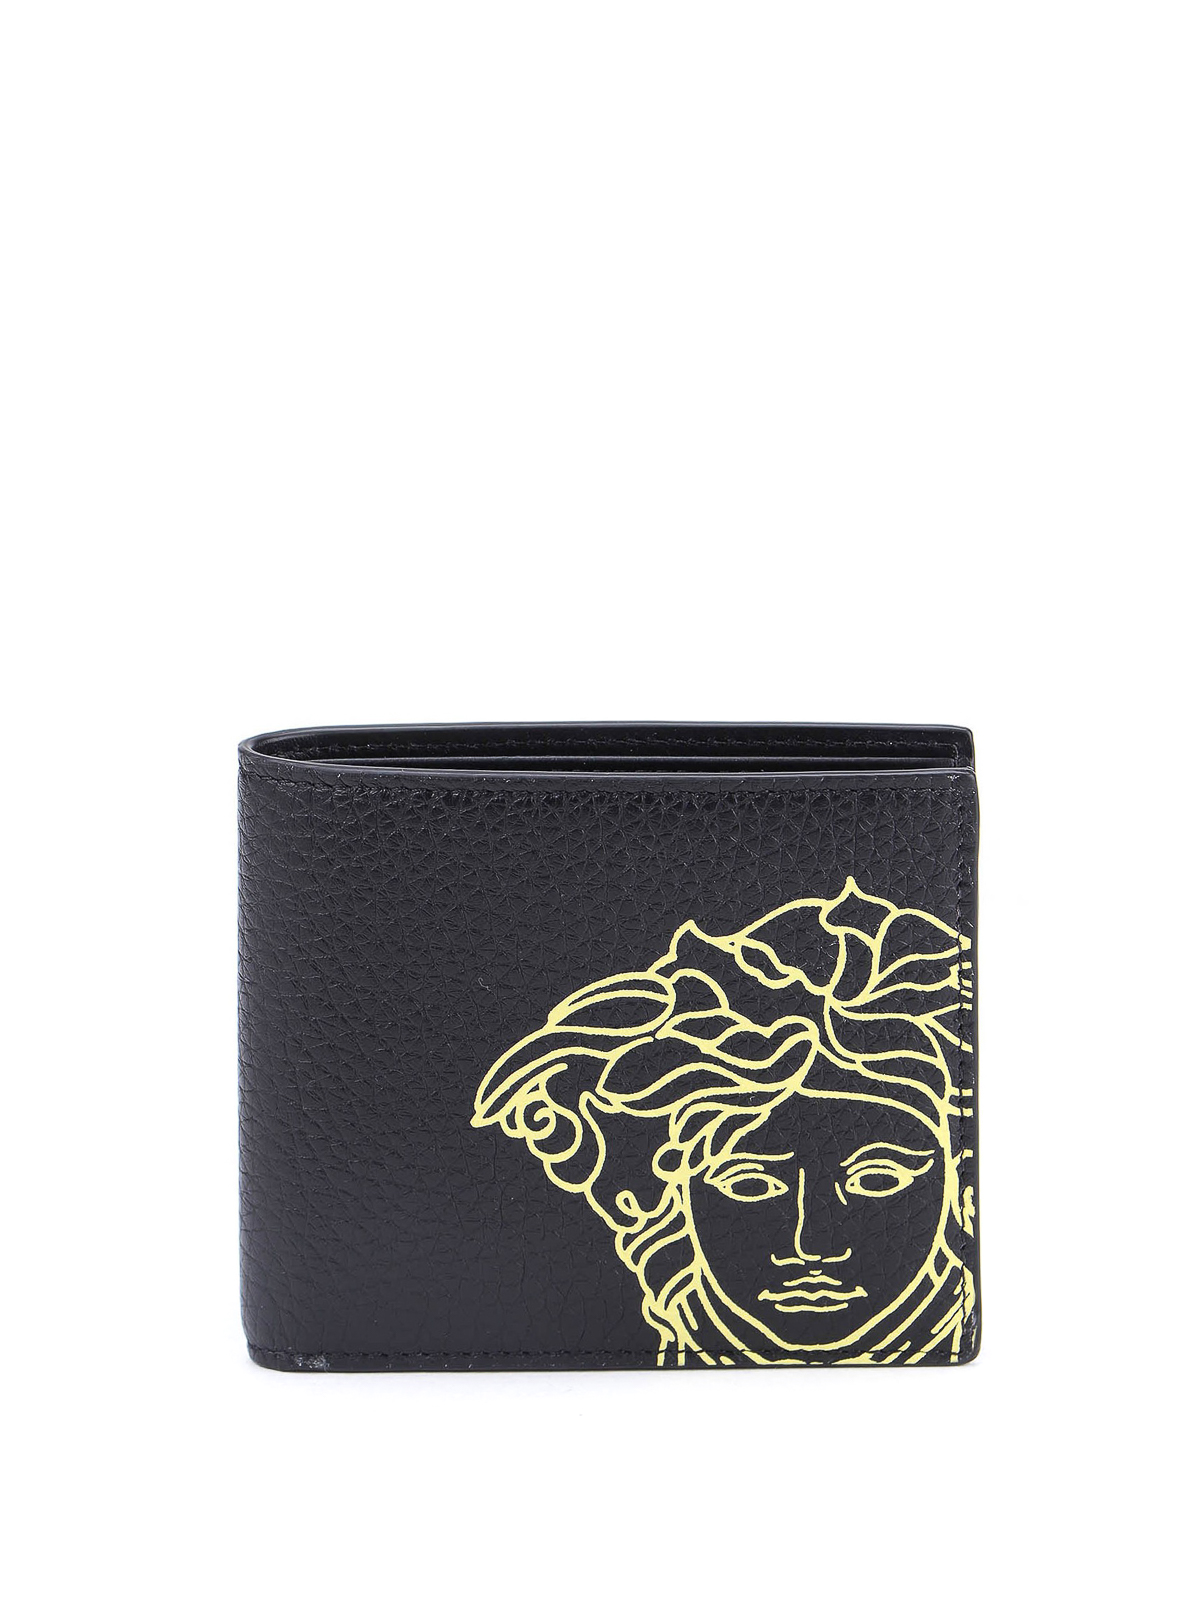 Versace HAMMERED LEATHER BI-FOLD WALLET